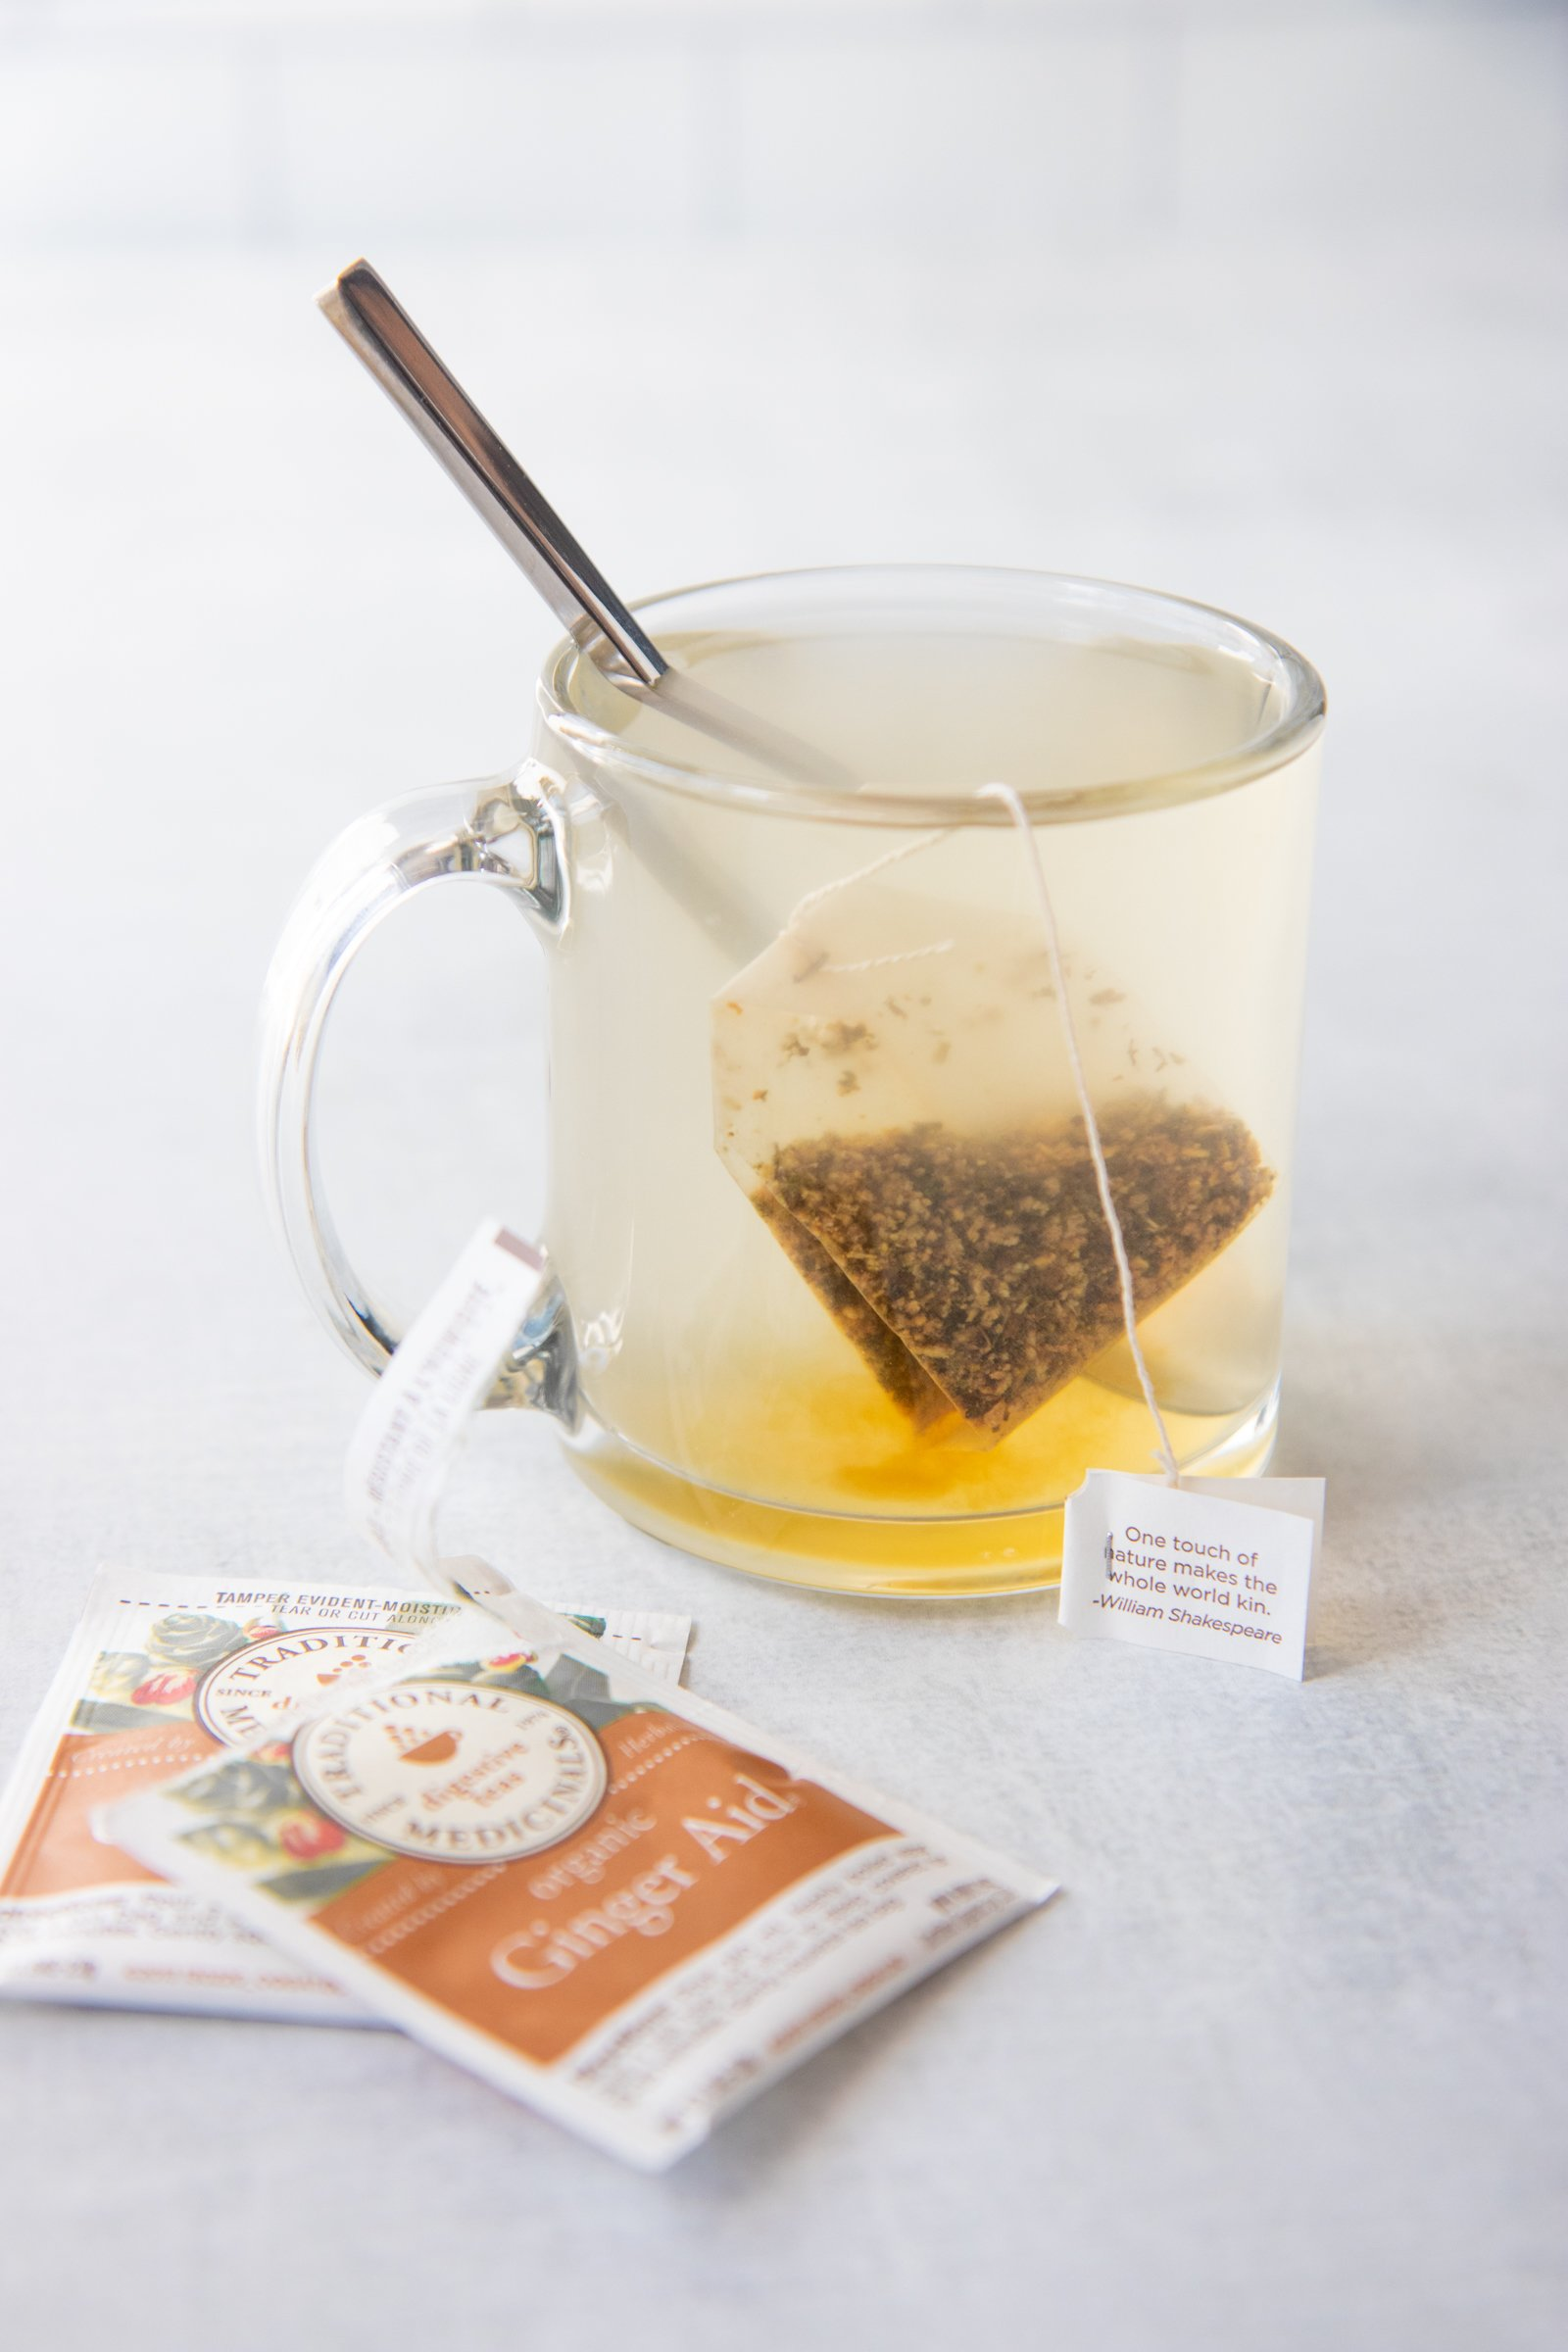 Clear glass mug full of ginger tea with a tea bag in the mug